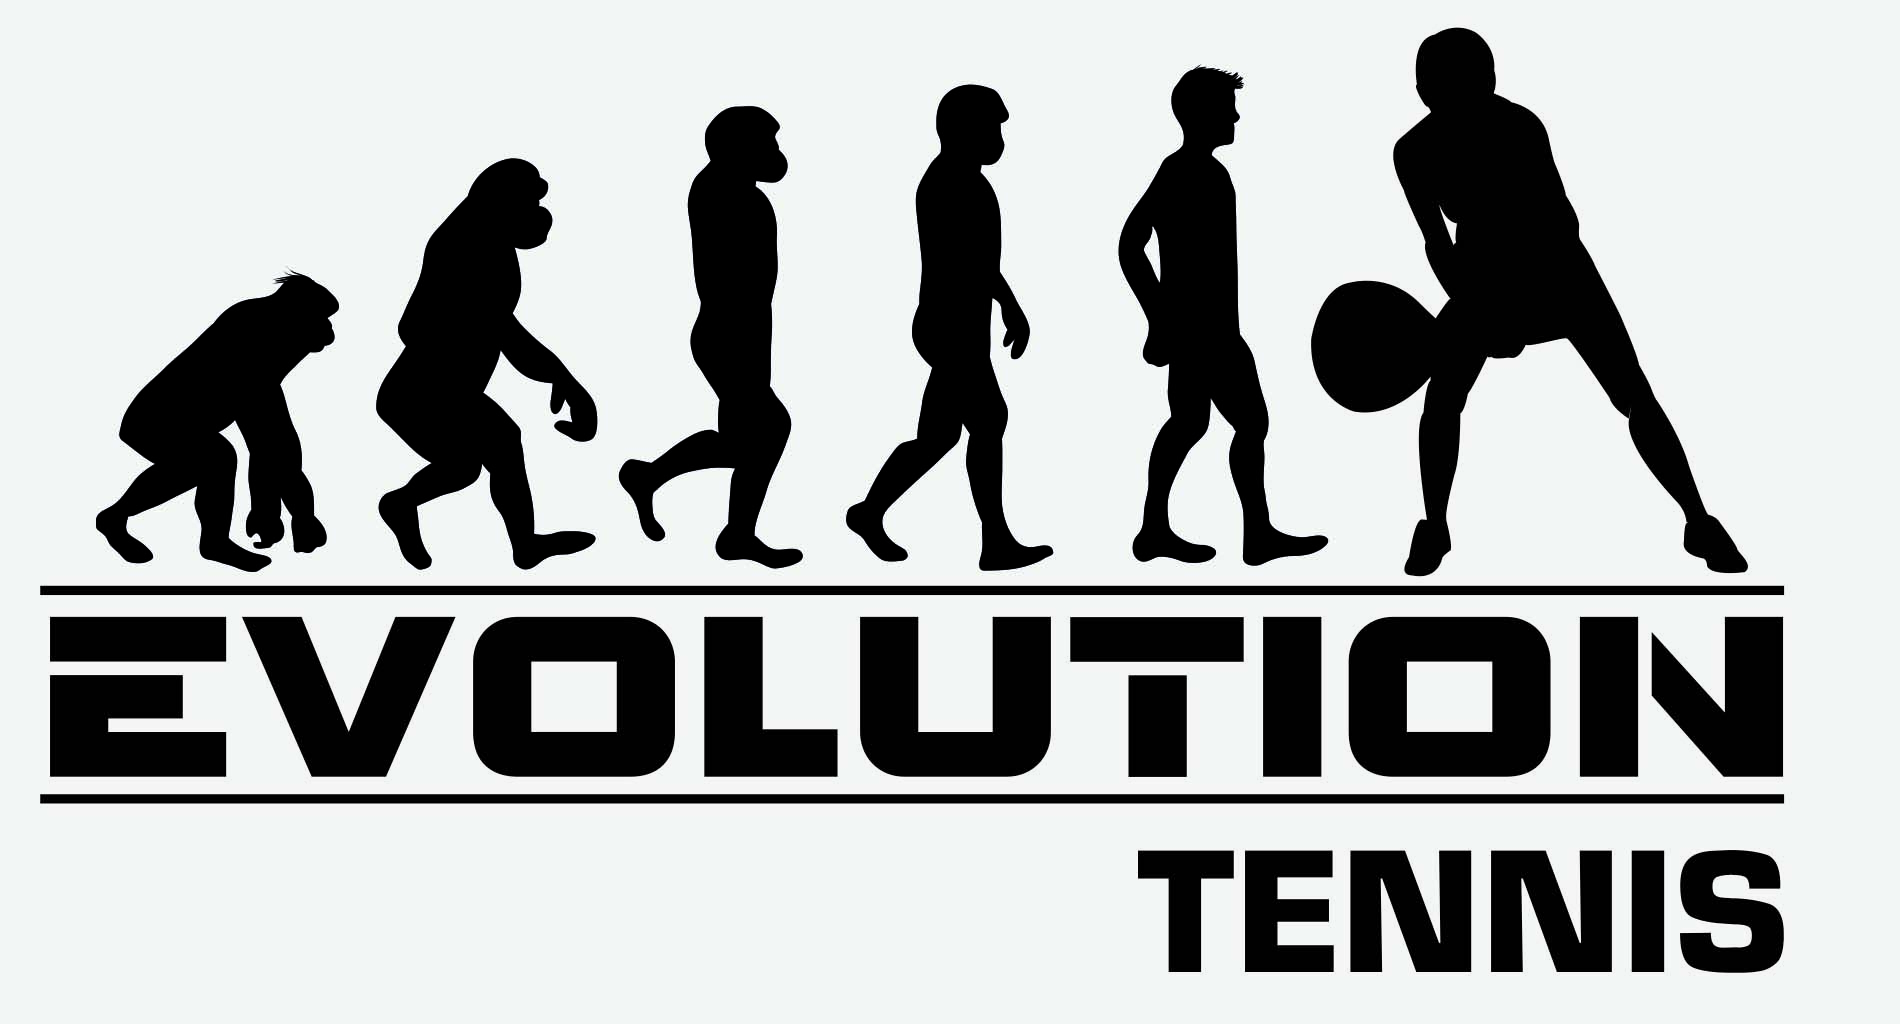 EVOLUTION TENIS